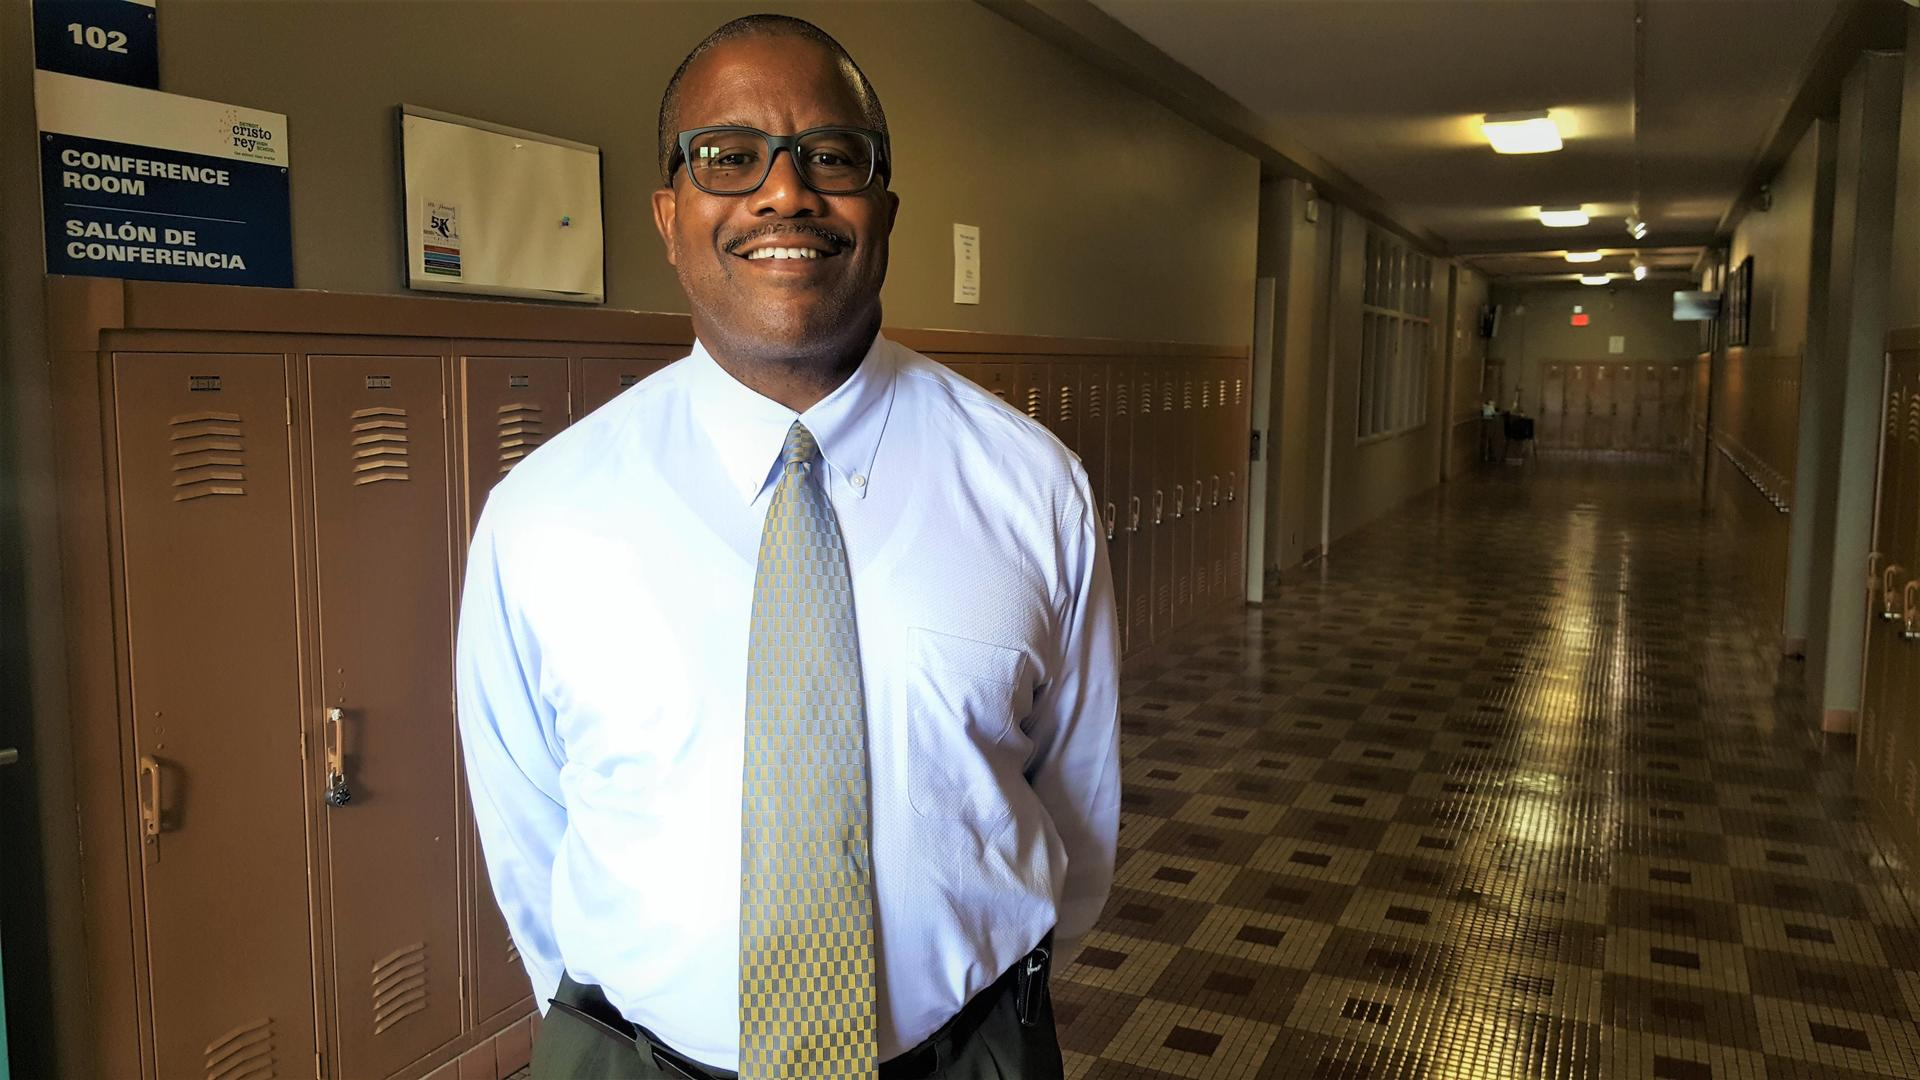 Fred Lumpkin, Corporate Work Study Director